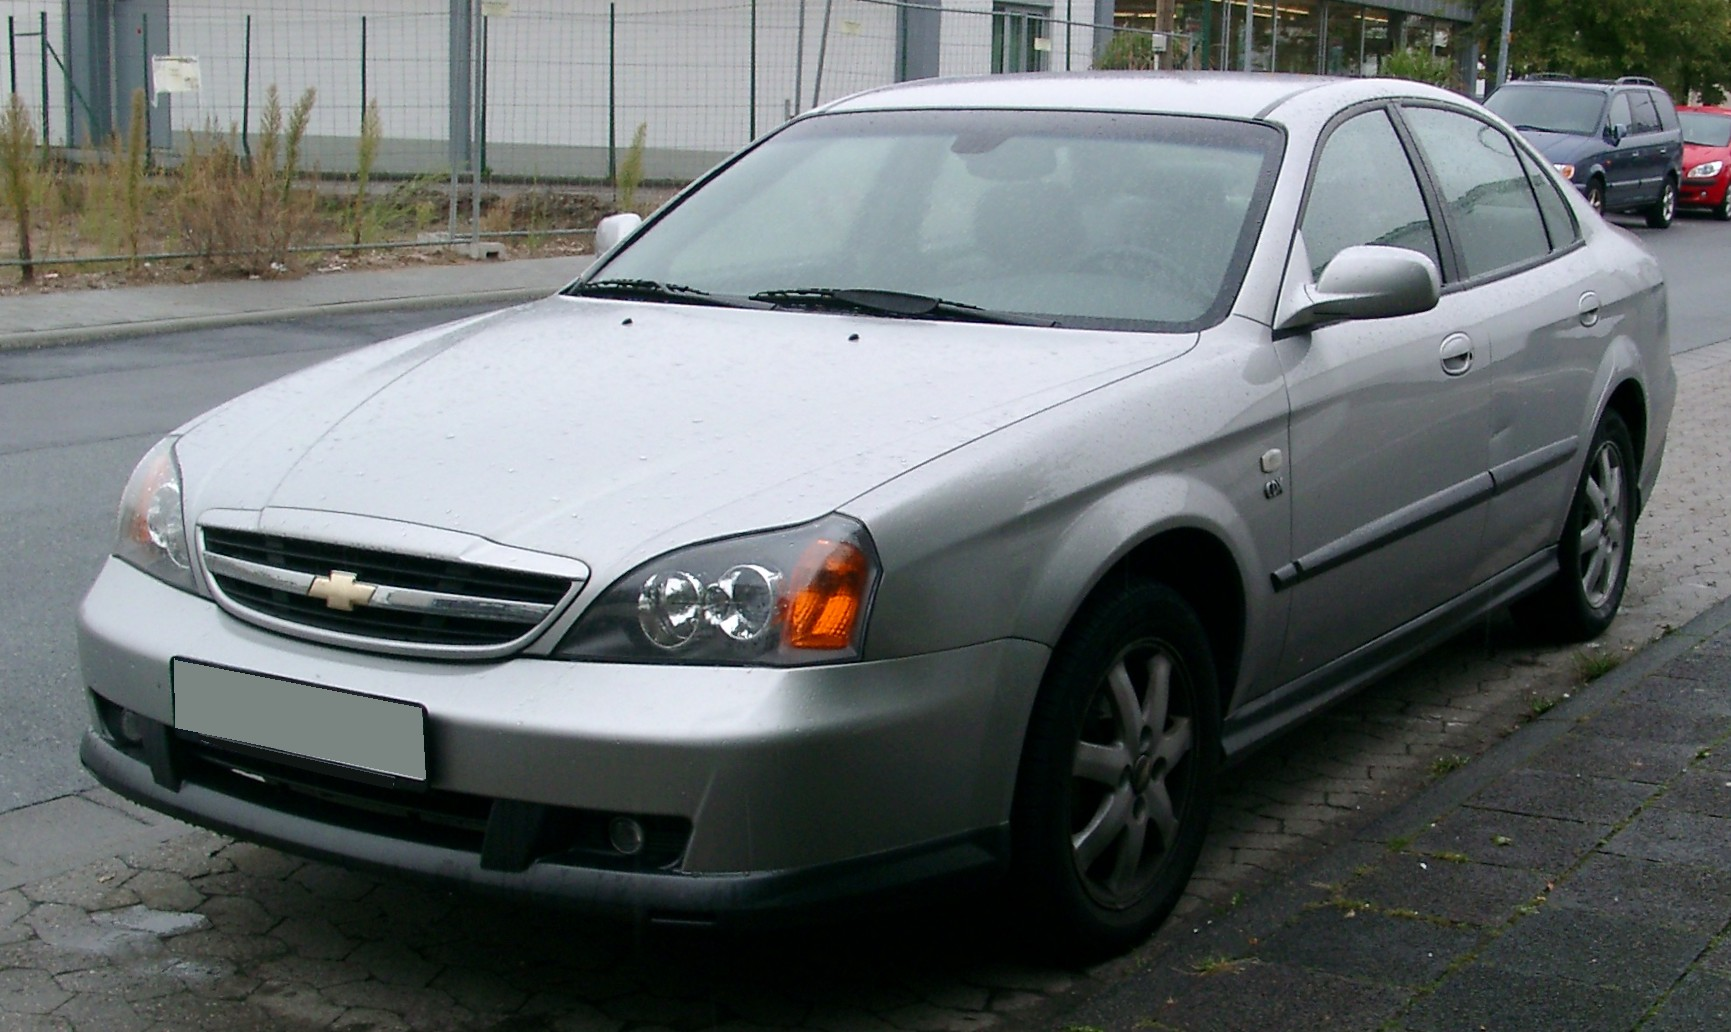 Pictures of daewoo evanda #2